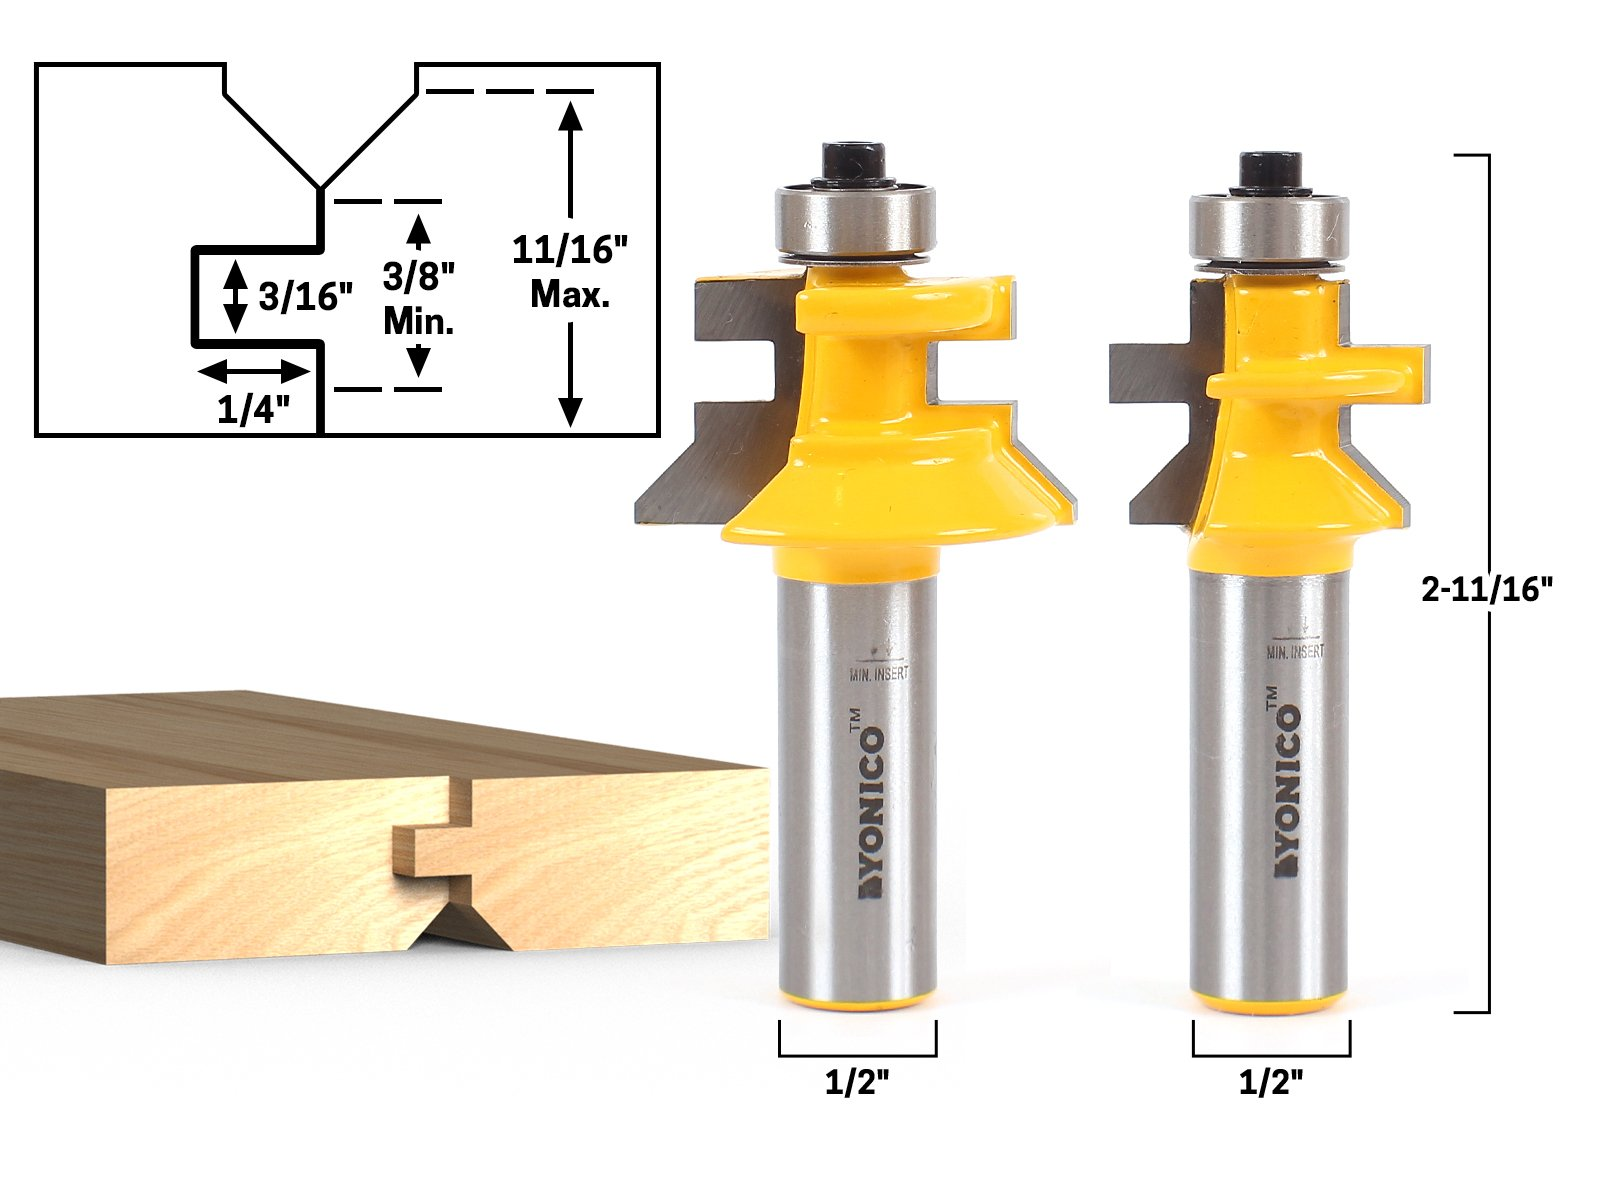 Yonico 15229 Flooring 2 Bit Tongue and Groove Flooring Router Bit Set 1/2-Inch Shank by Yonico